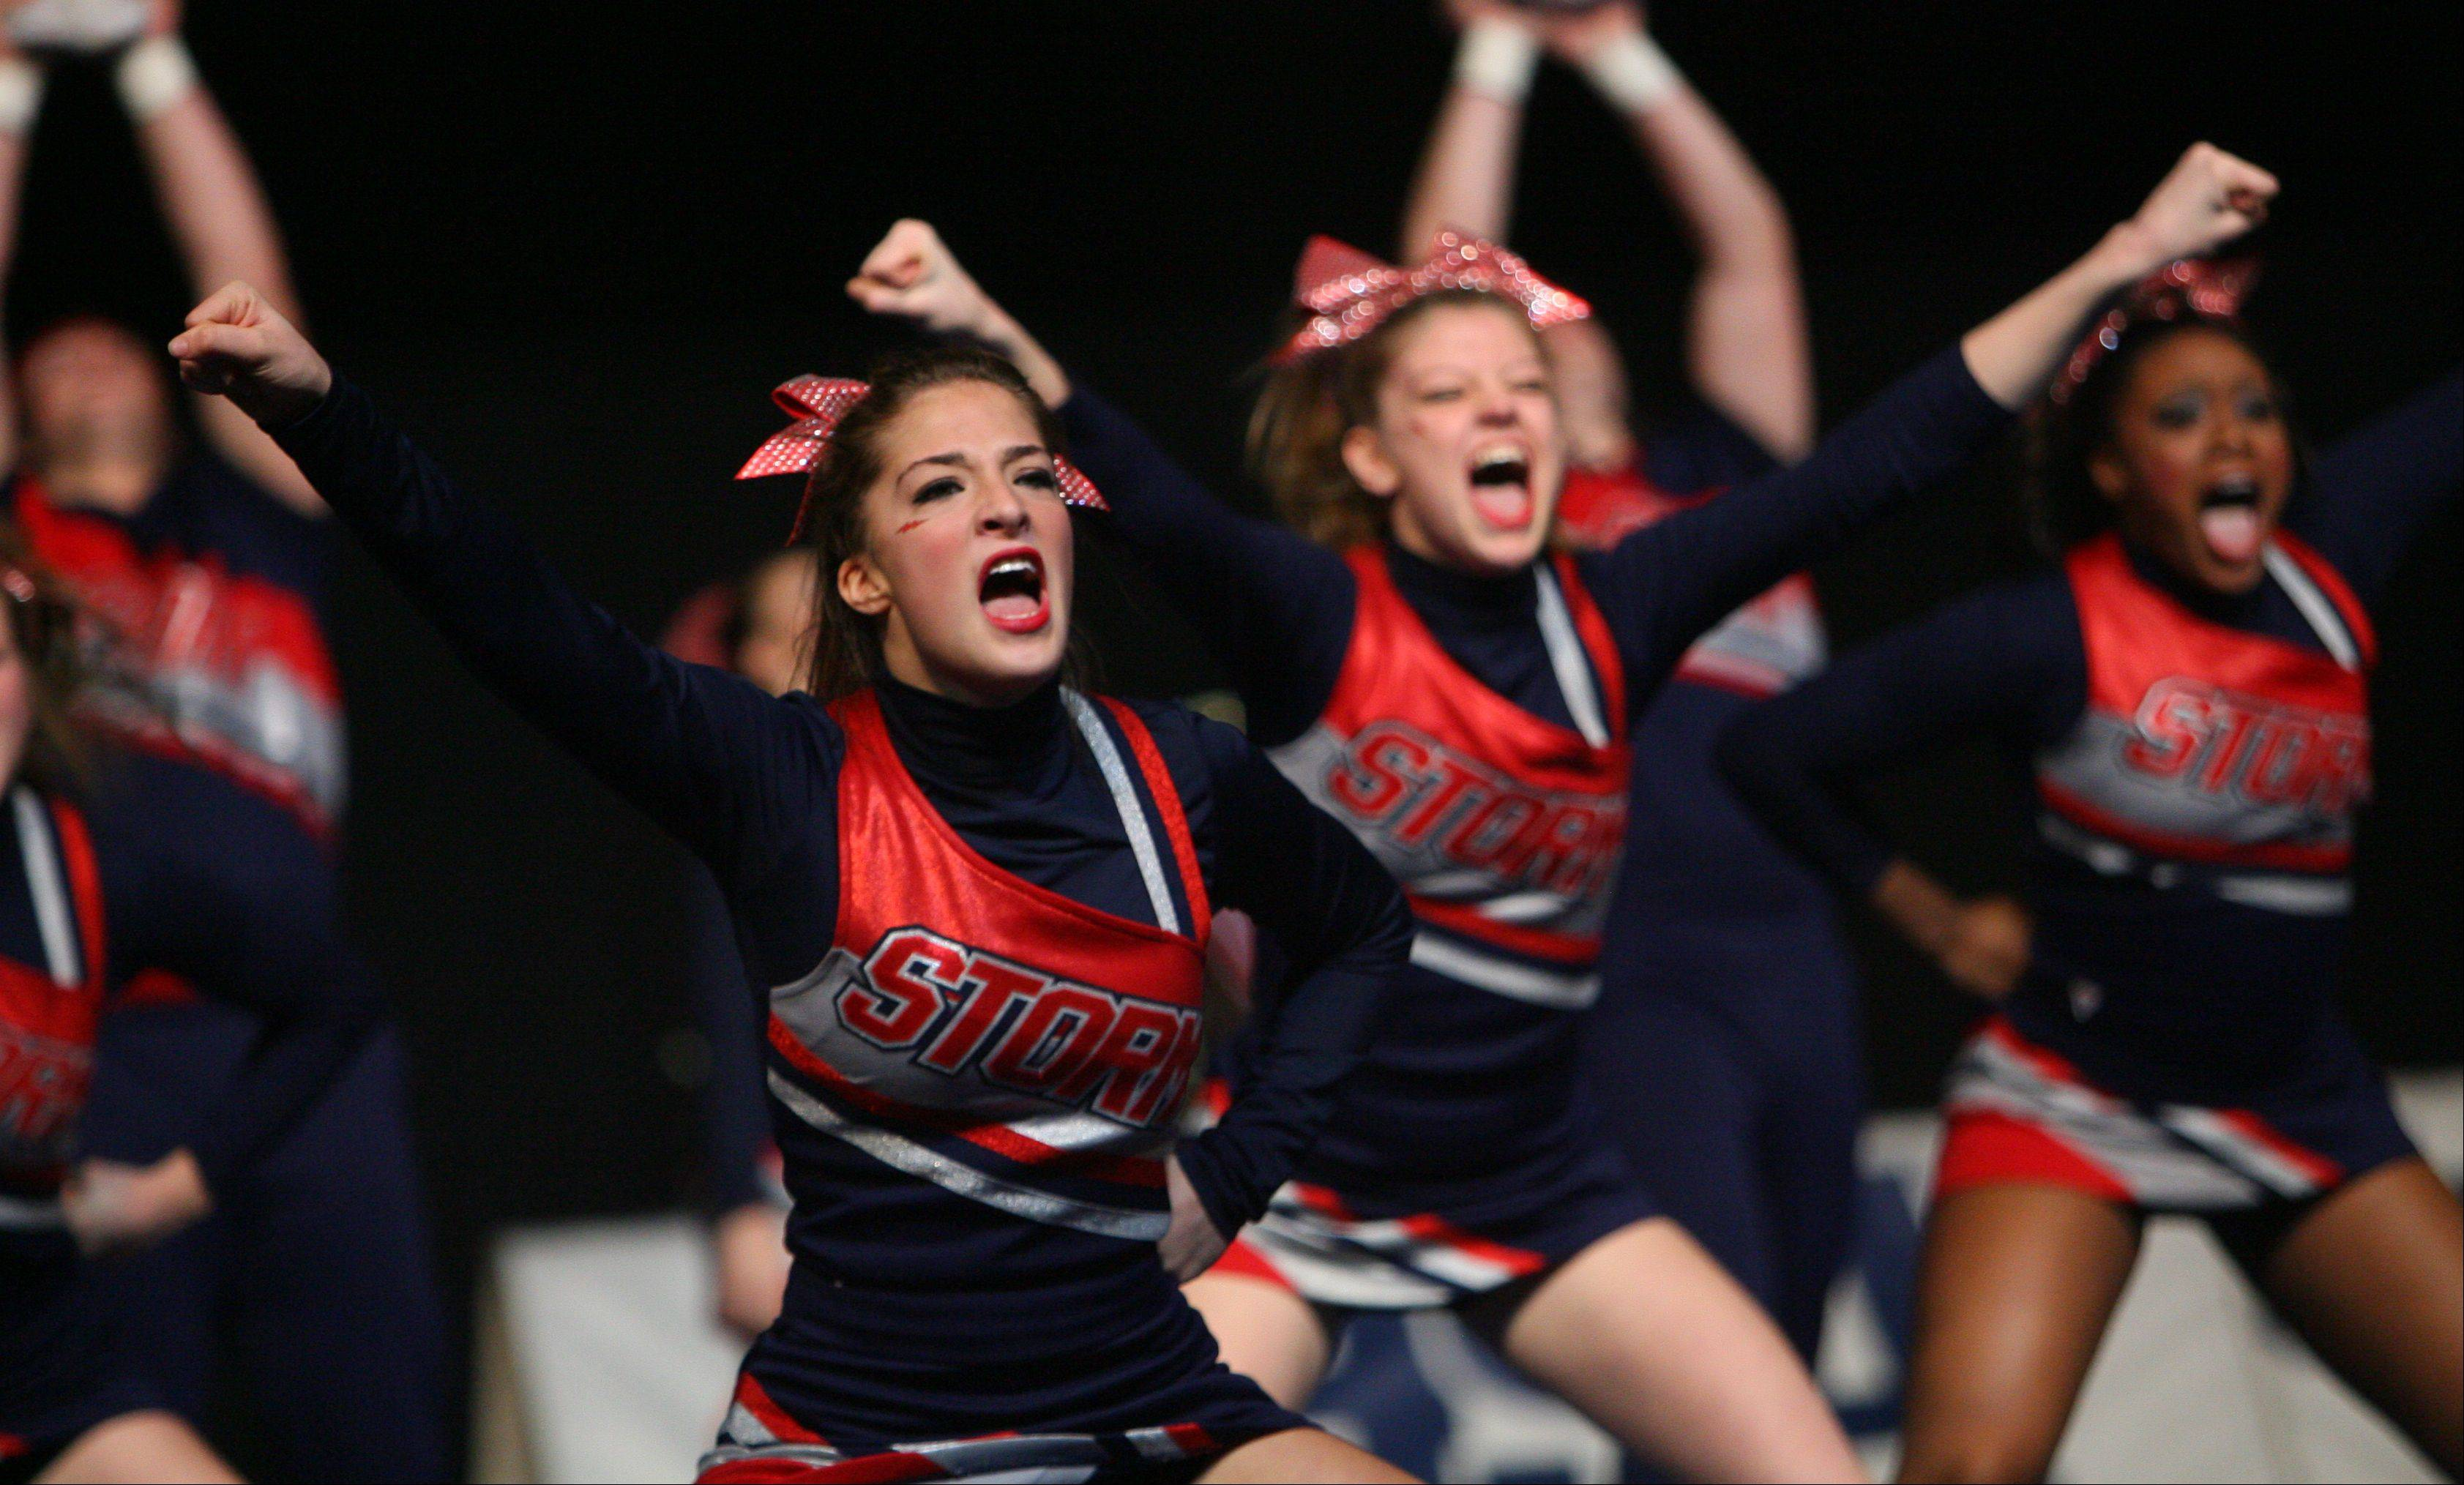 South Elgin High School participates in the IHSA Competitive Cheerleading finals on Saturday at the U.S. Cellular Coliseum in Bloomington.